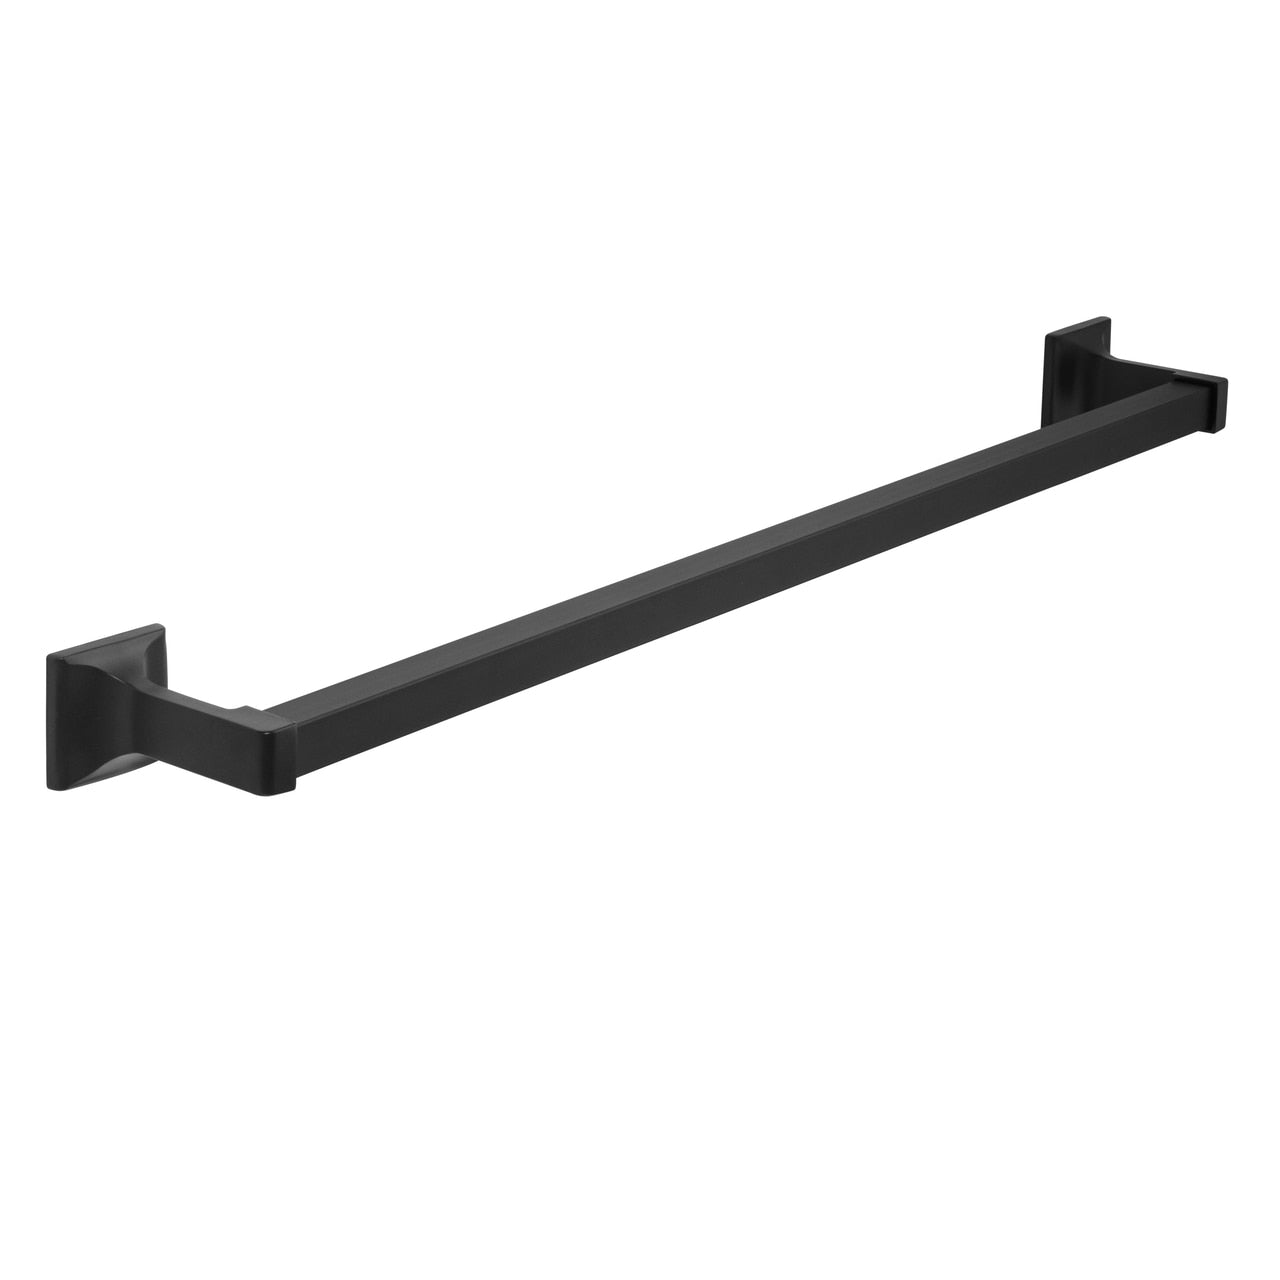 "Designers Impressions Eclipse Series Black 24"" Towel Bar"